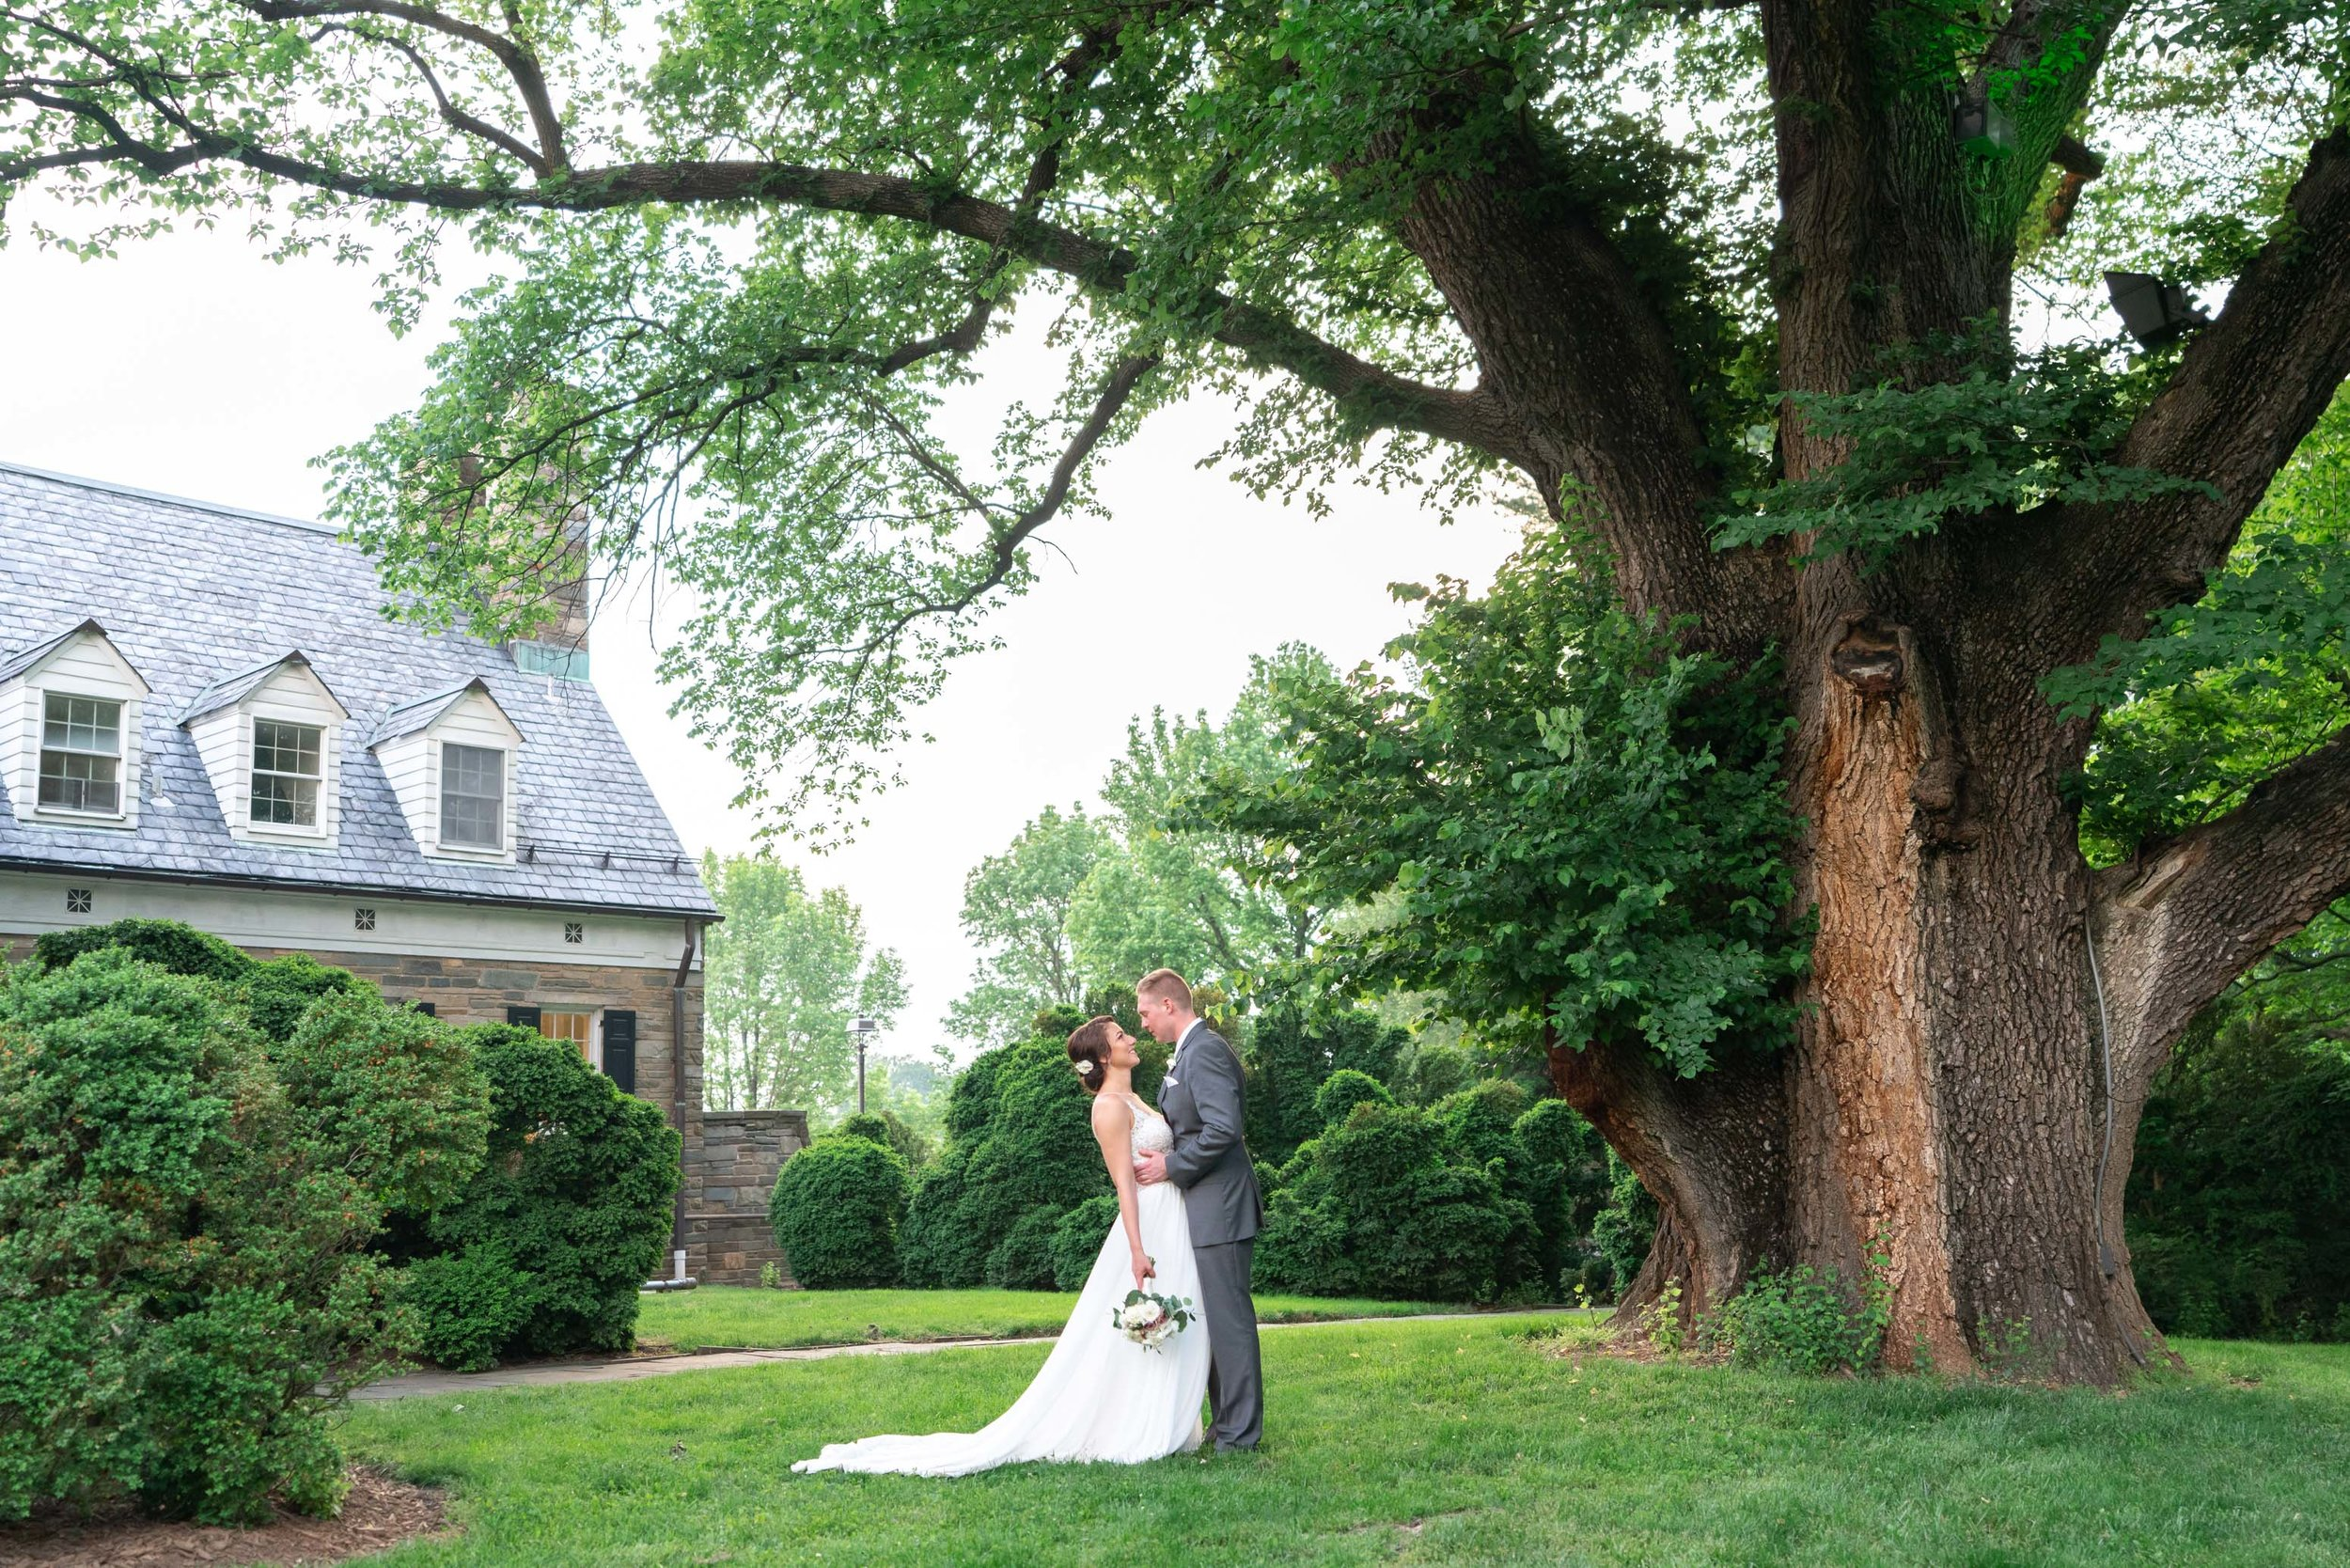 Bride and groom kiss under large tree with Glenview Mansion in the background